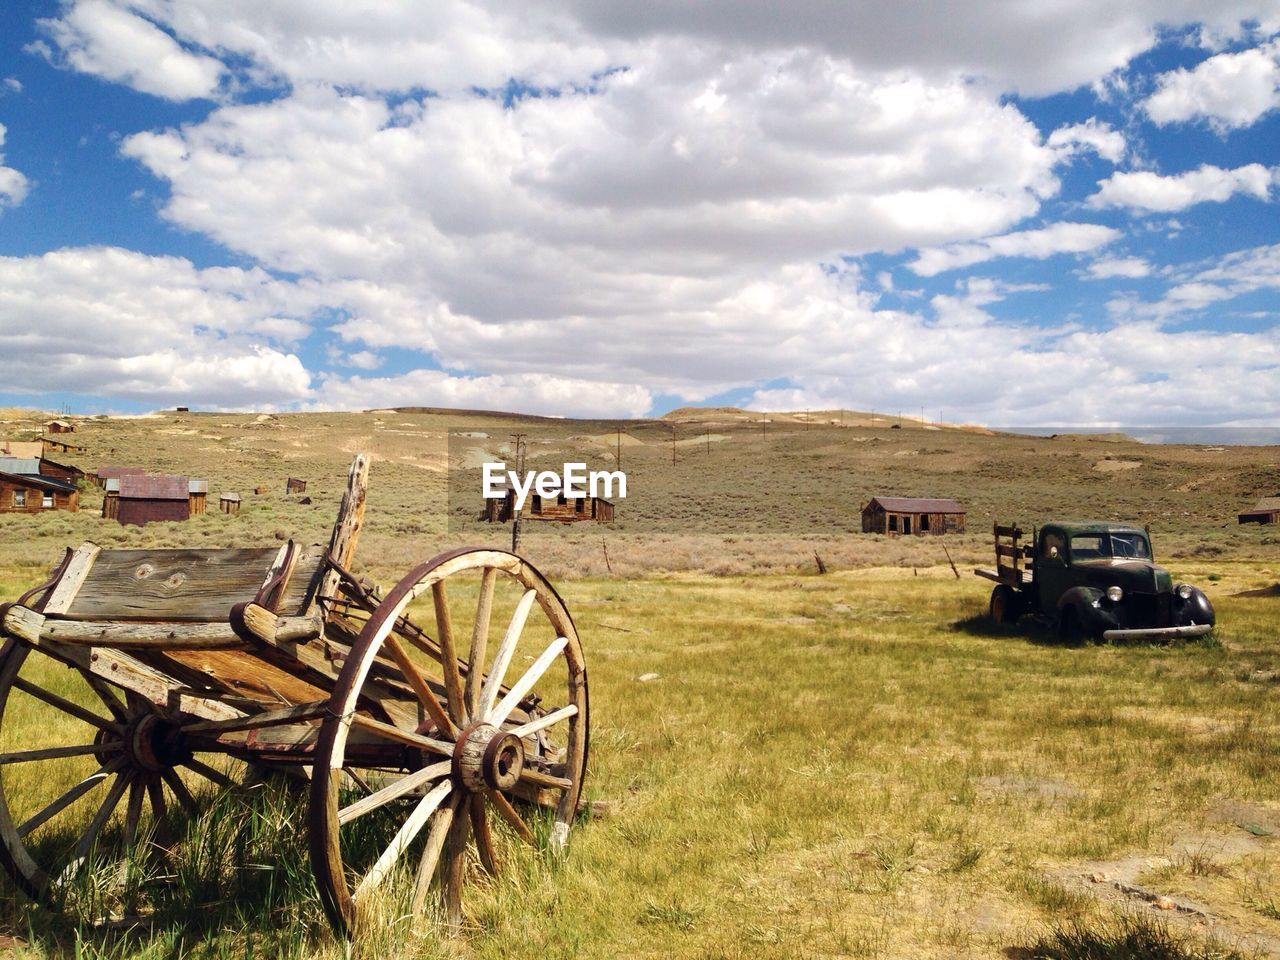 Abandoned Cart And Car On Grassy Field Against Cloudy Sky